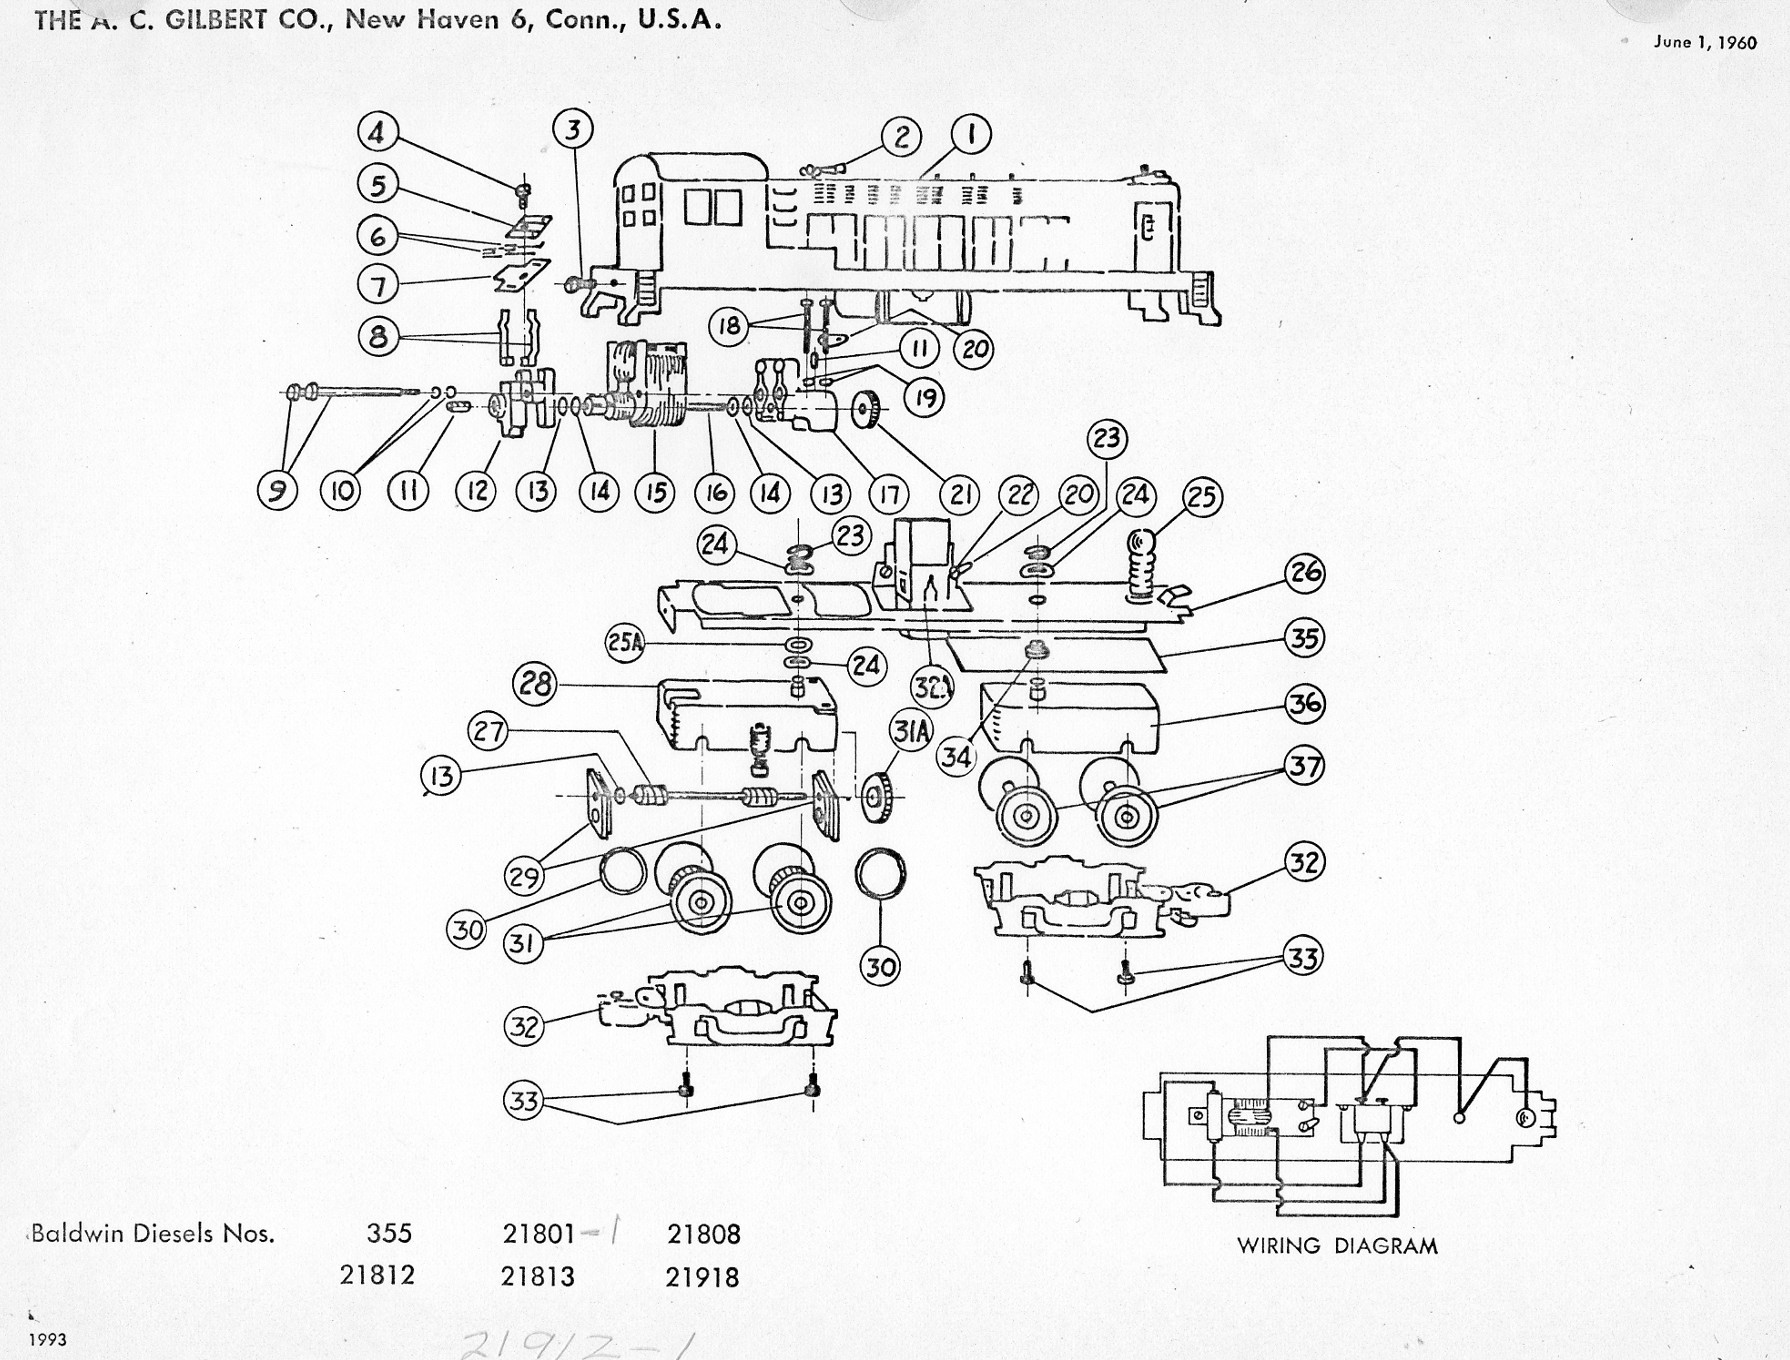 American Flyer Locomotive Baldwinsels Parts List